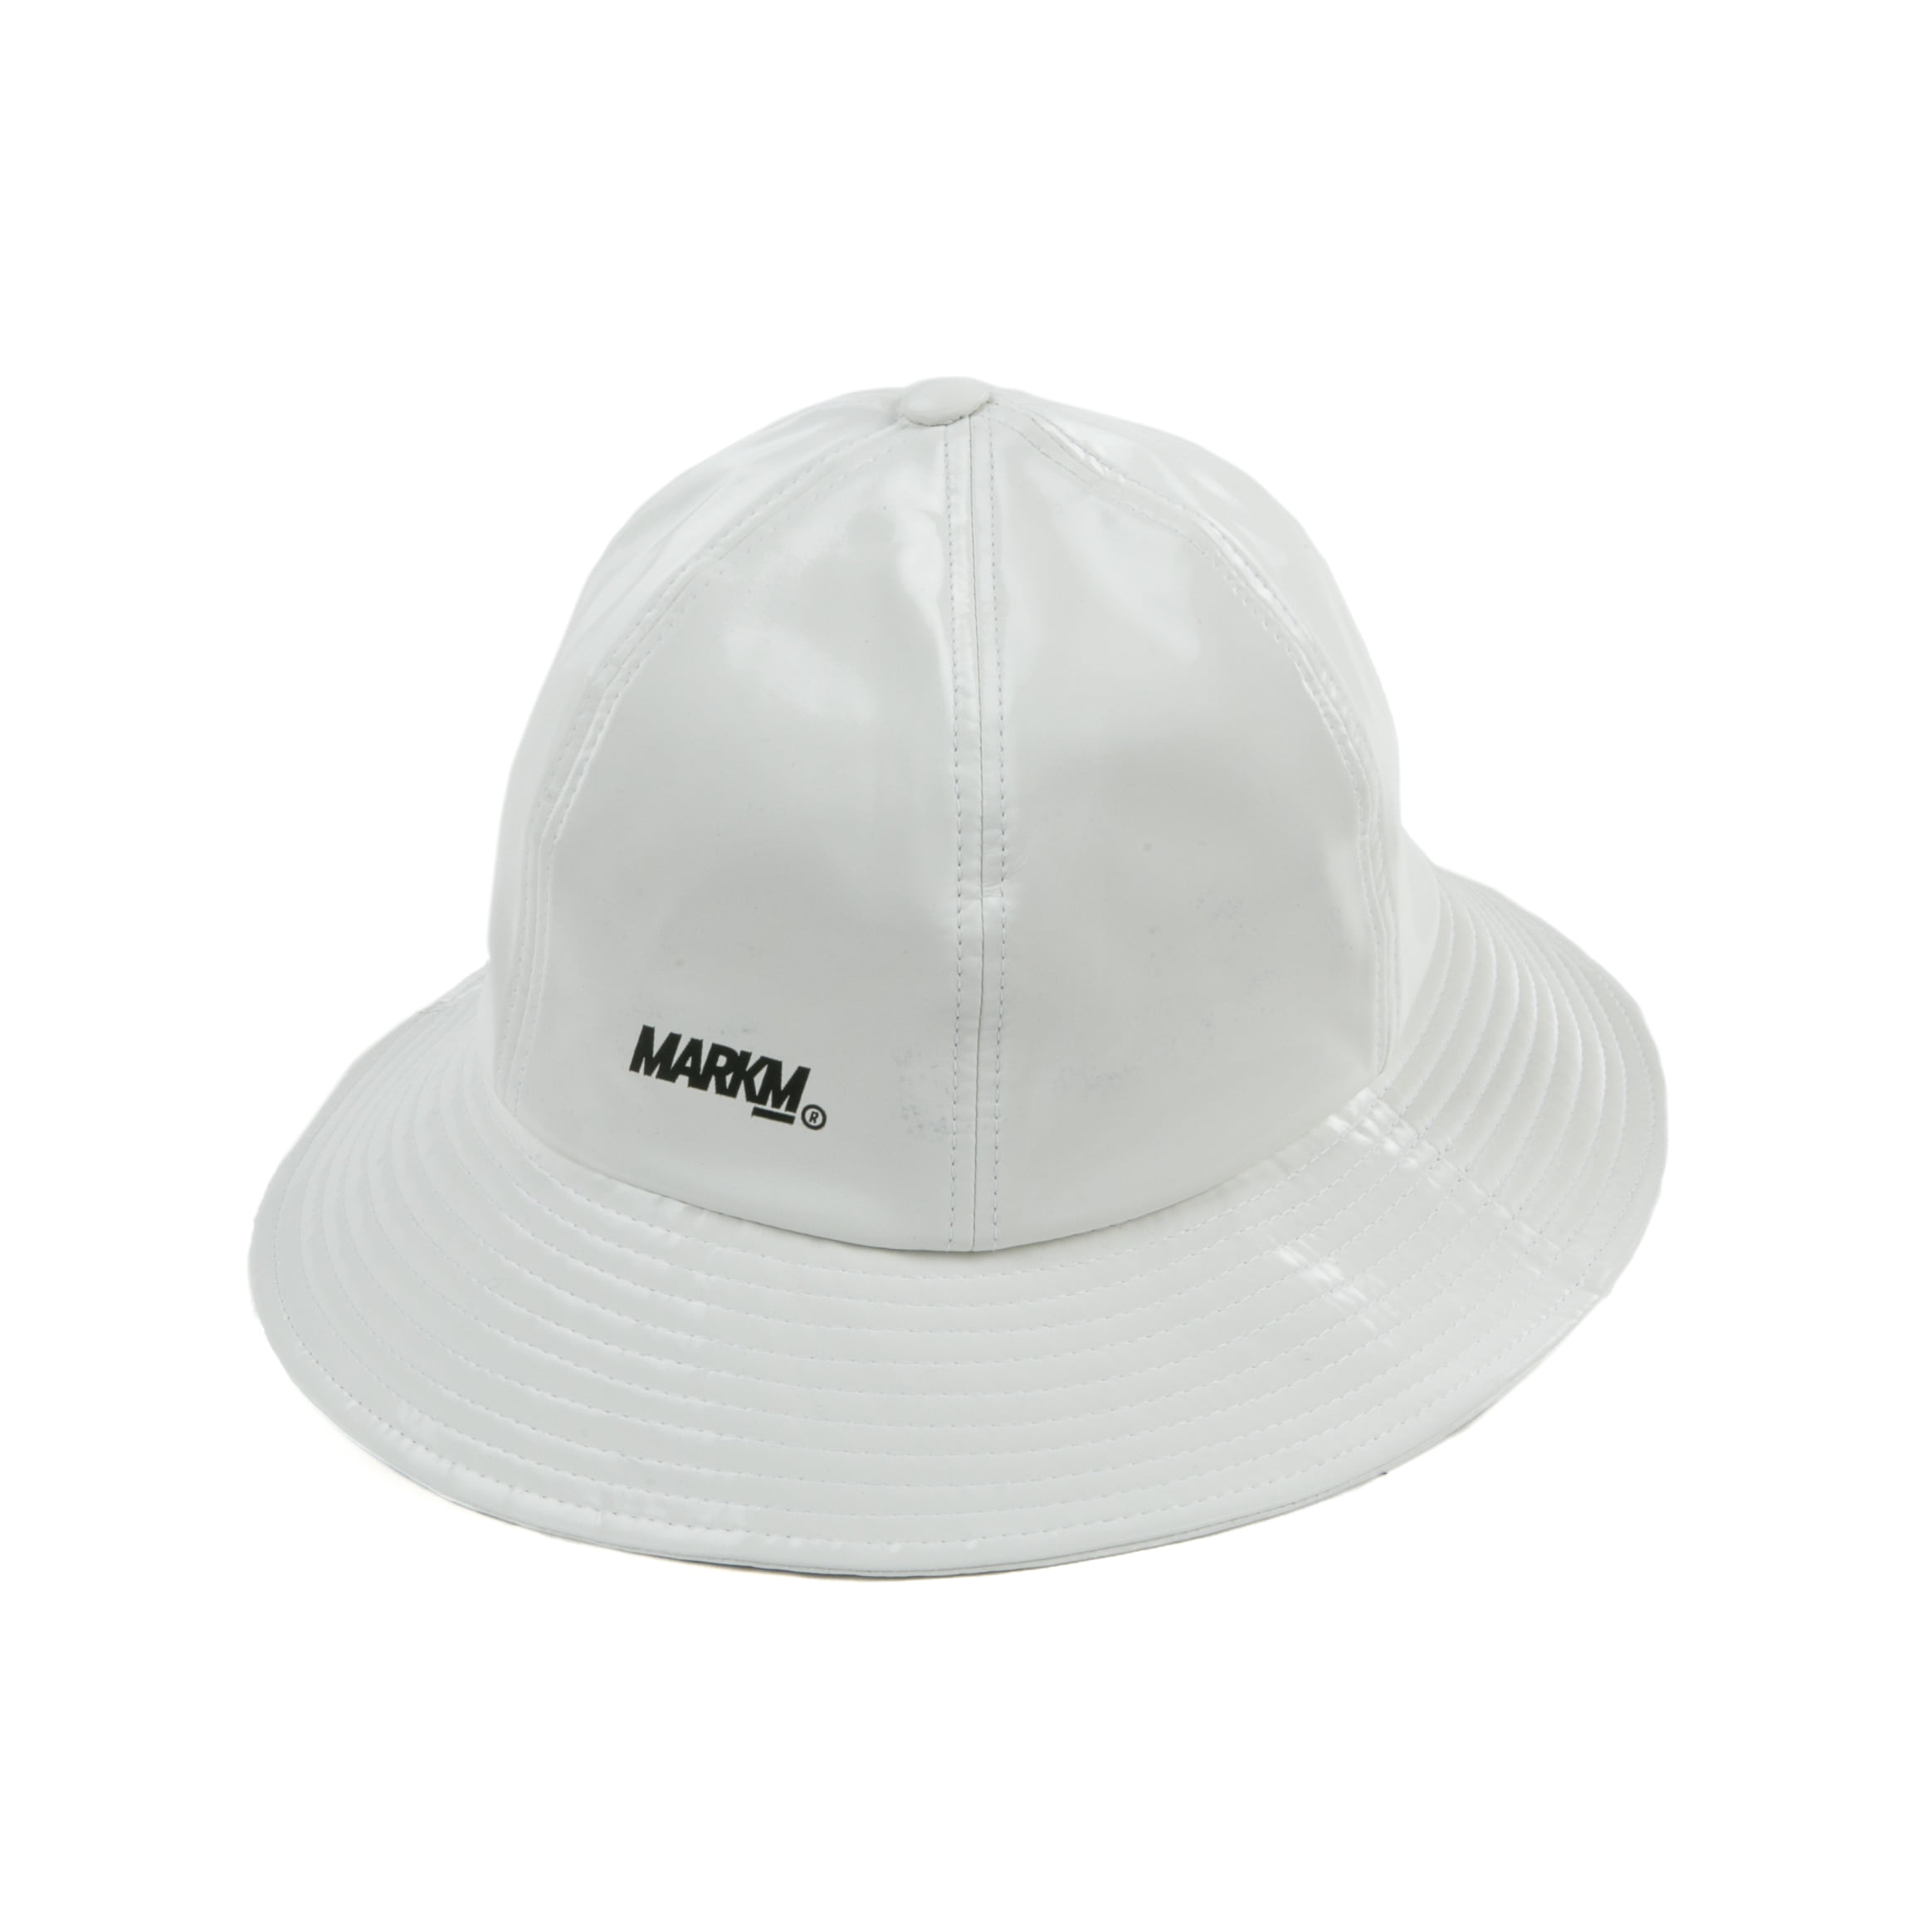 19SS Leather burket hat MXANC9812